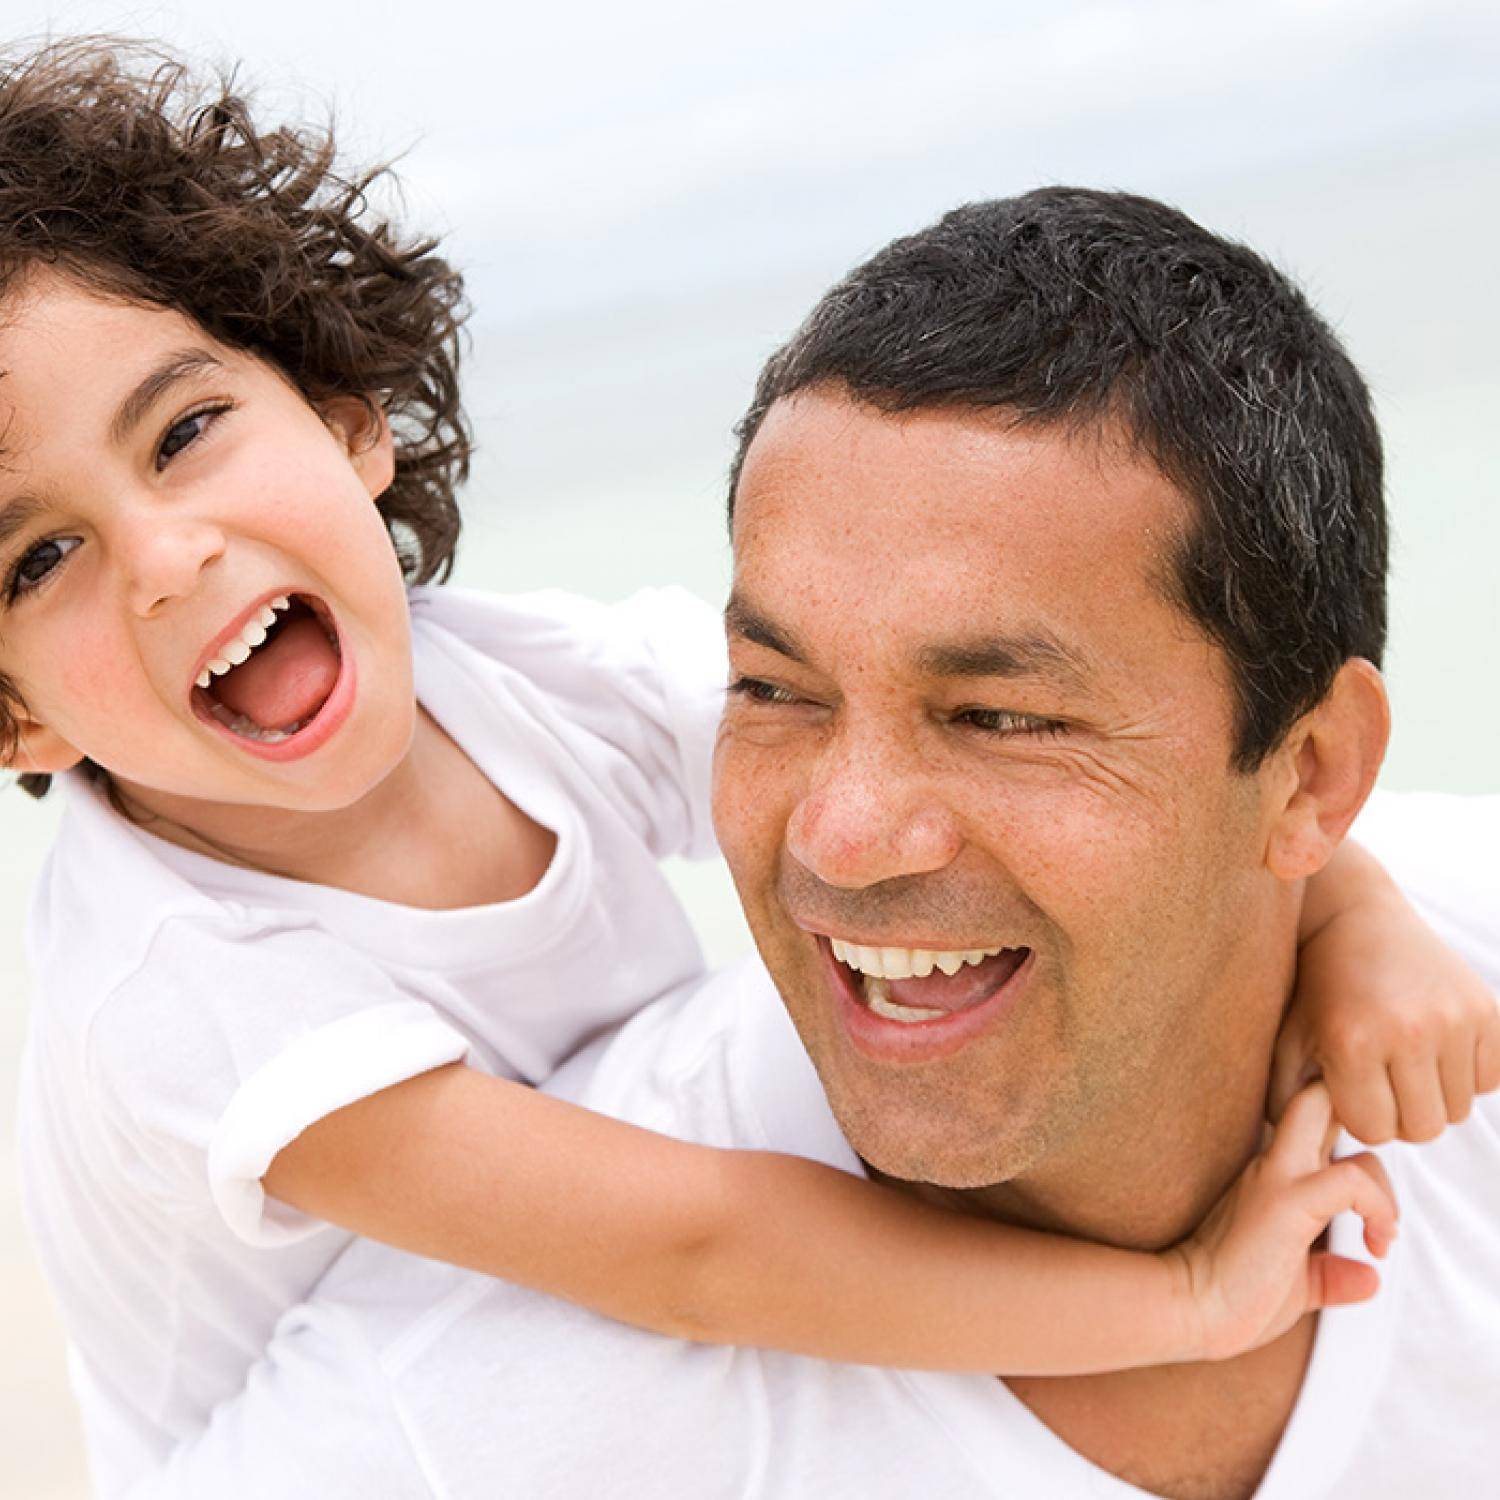 dad Why Kids Need Their Dads